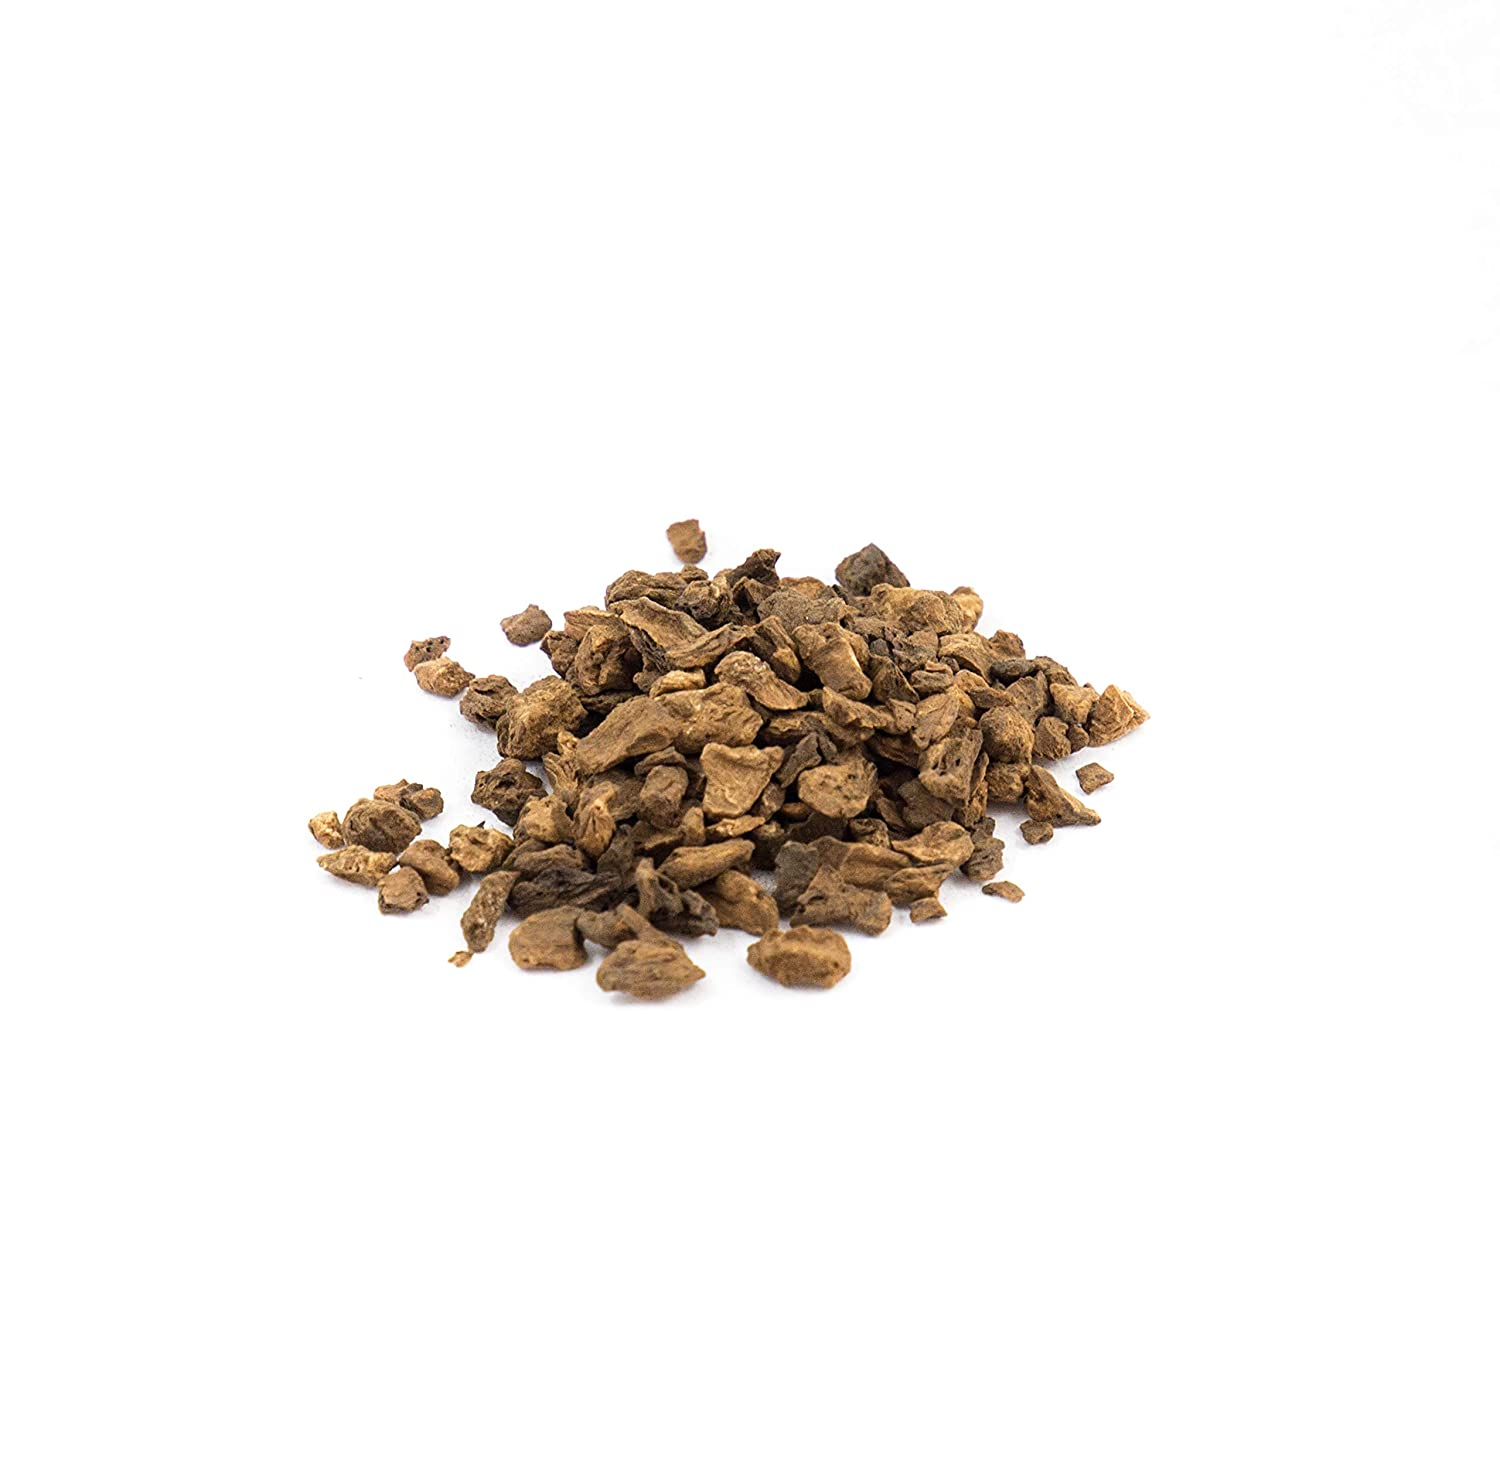 Pure Roasted Chicory Root 2 lbs Cut and Sifted - Certified Organic